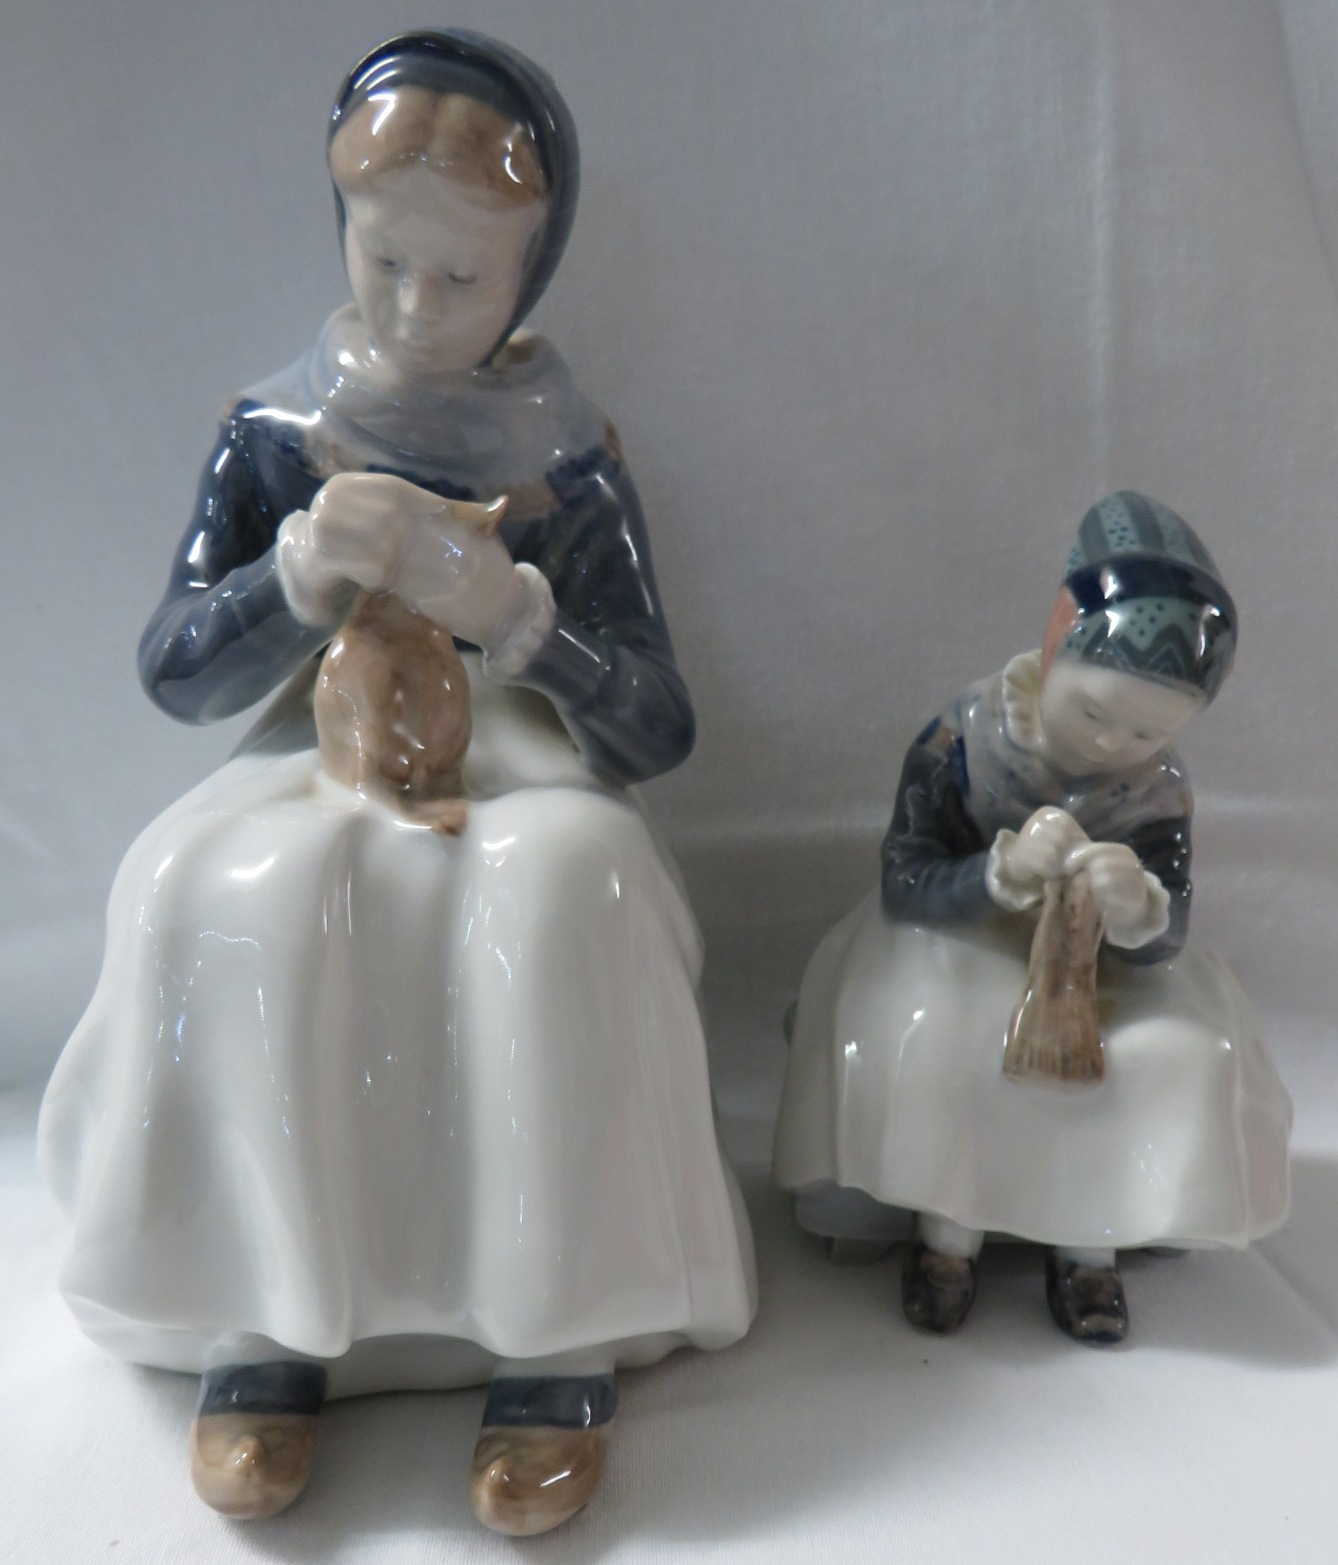 Lot 57 - Two Royal Copenhagen figures - a young woman seated on a bench with sewing, numbered 1317, height